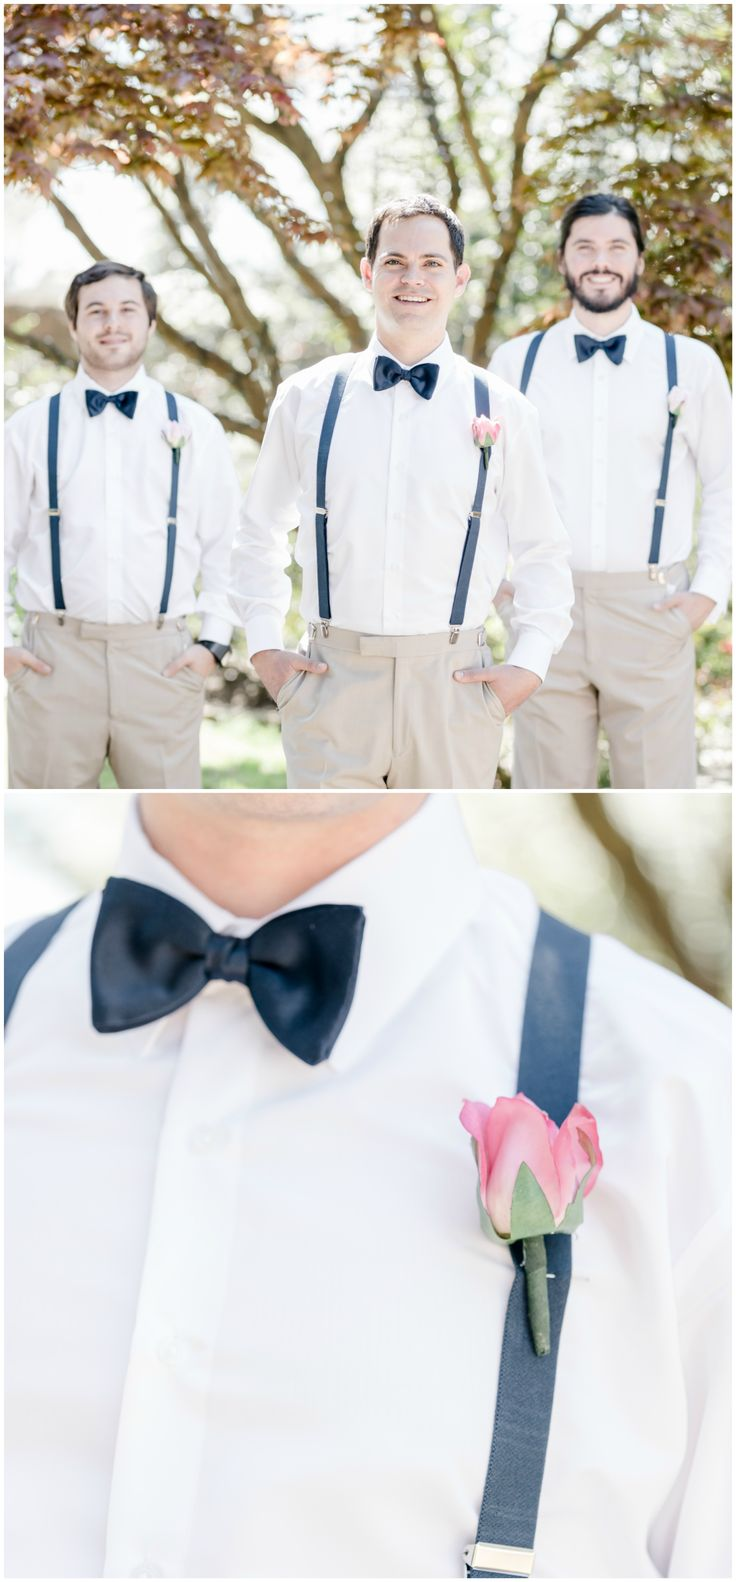 Groomsmen fashion, casual wedding attire, khaki pants, navy blue bowties, suspenders, pink rose boutonniere // Ariel Kaitlin Photography